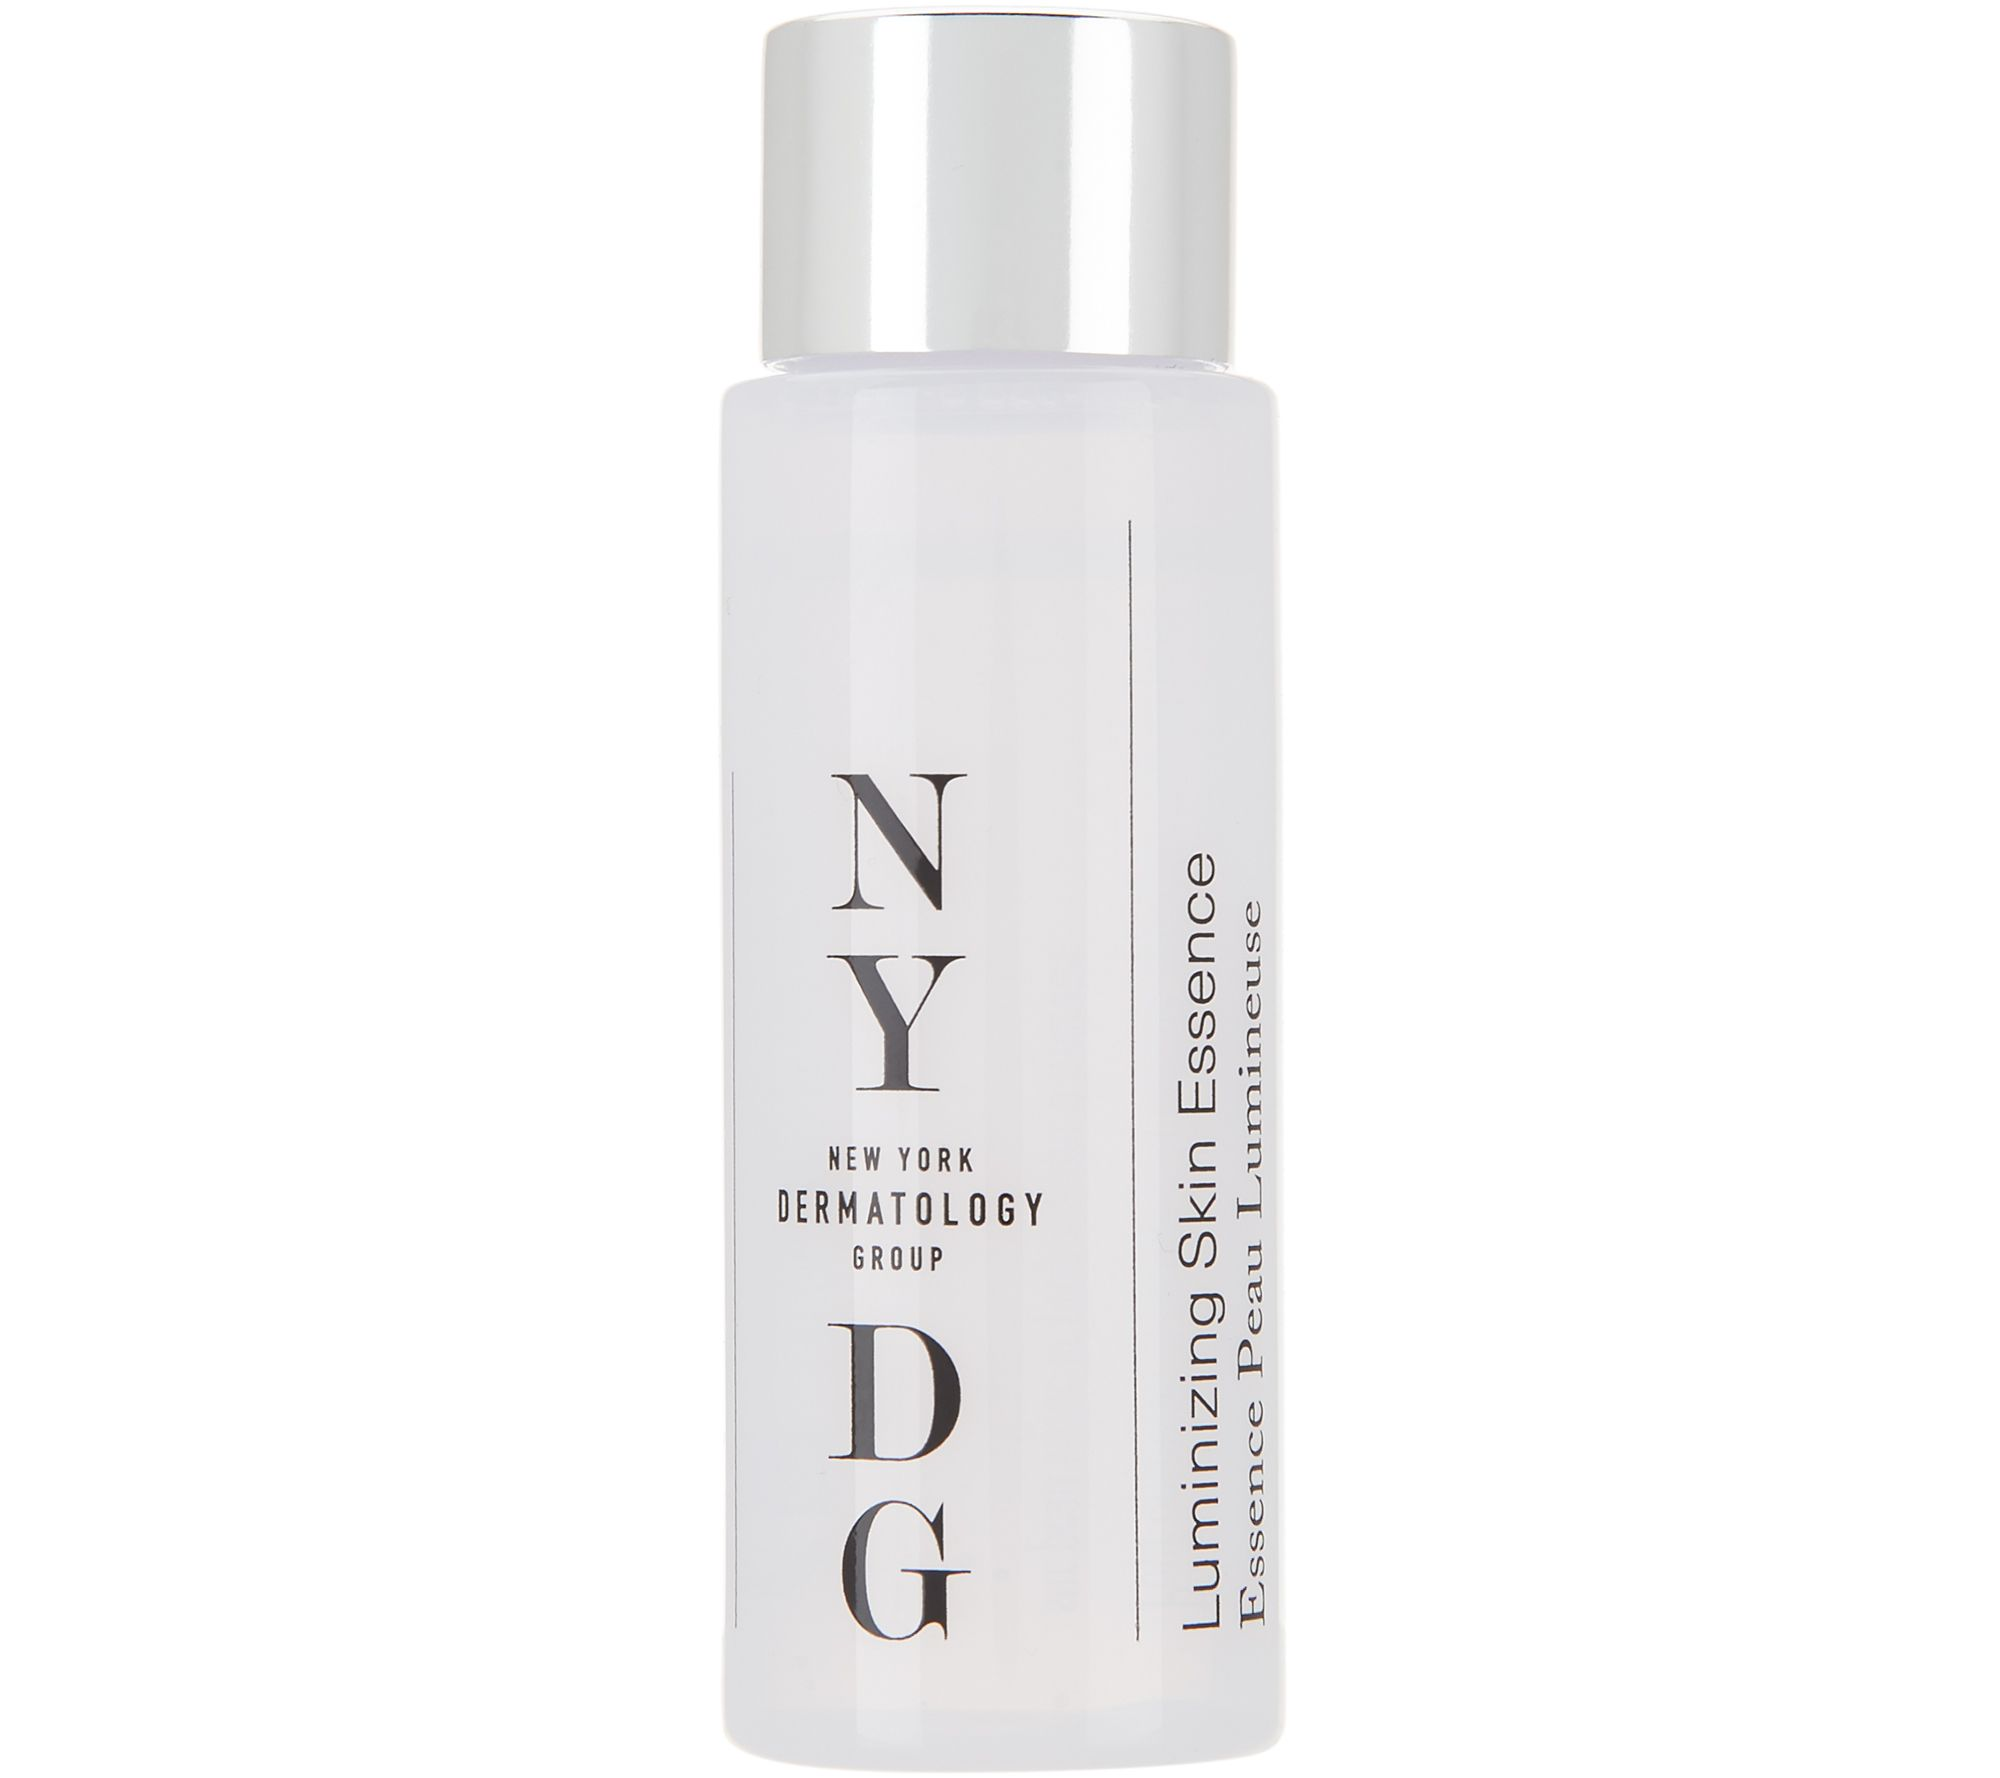 Nydg Skincare 4 Piece Discovery Kit Page 1 Qvc Com